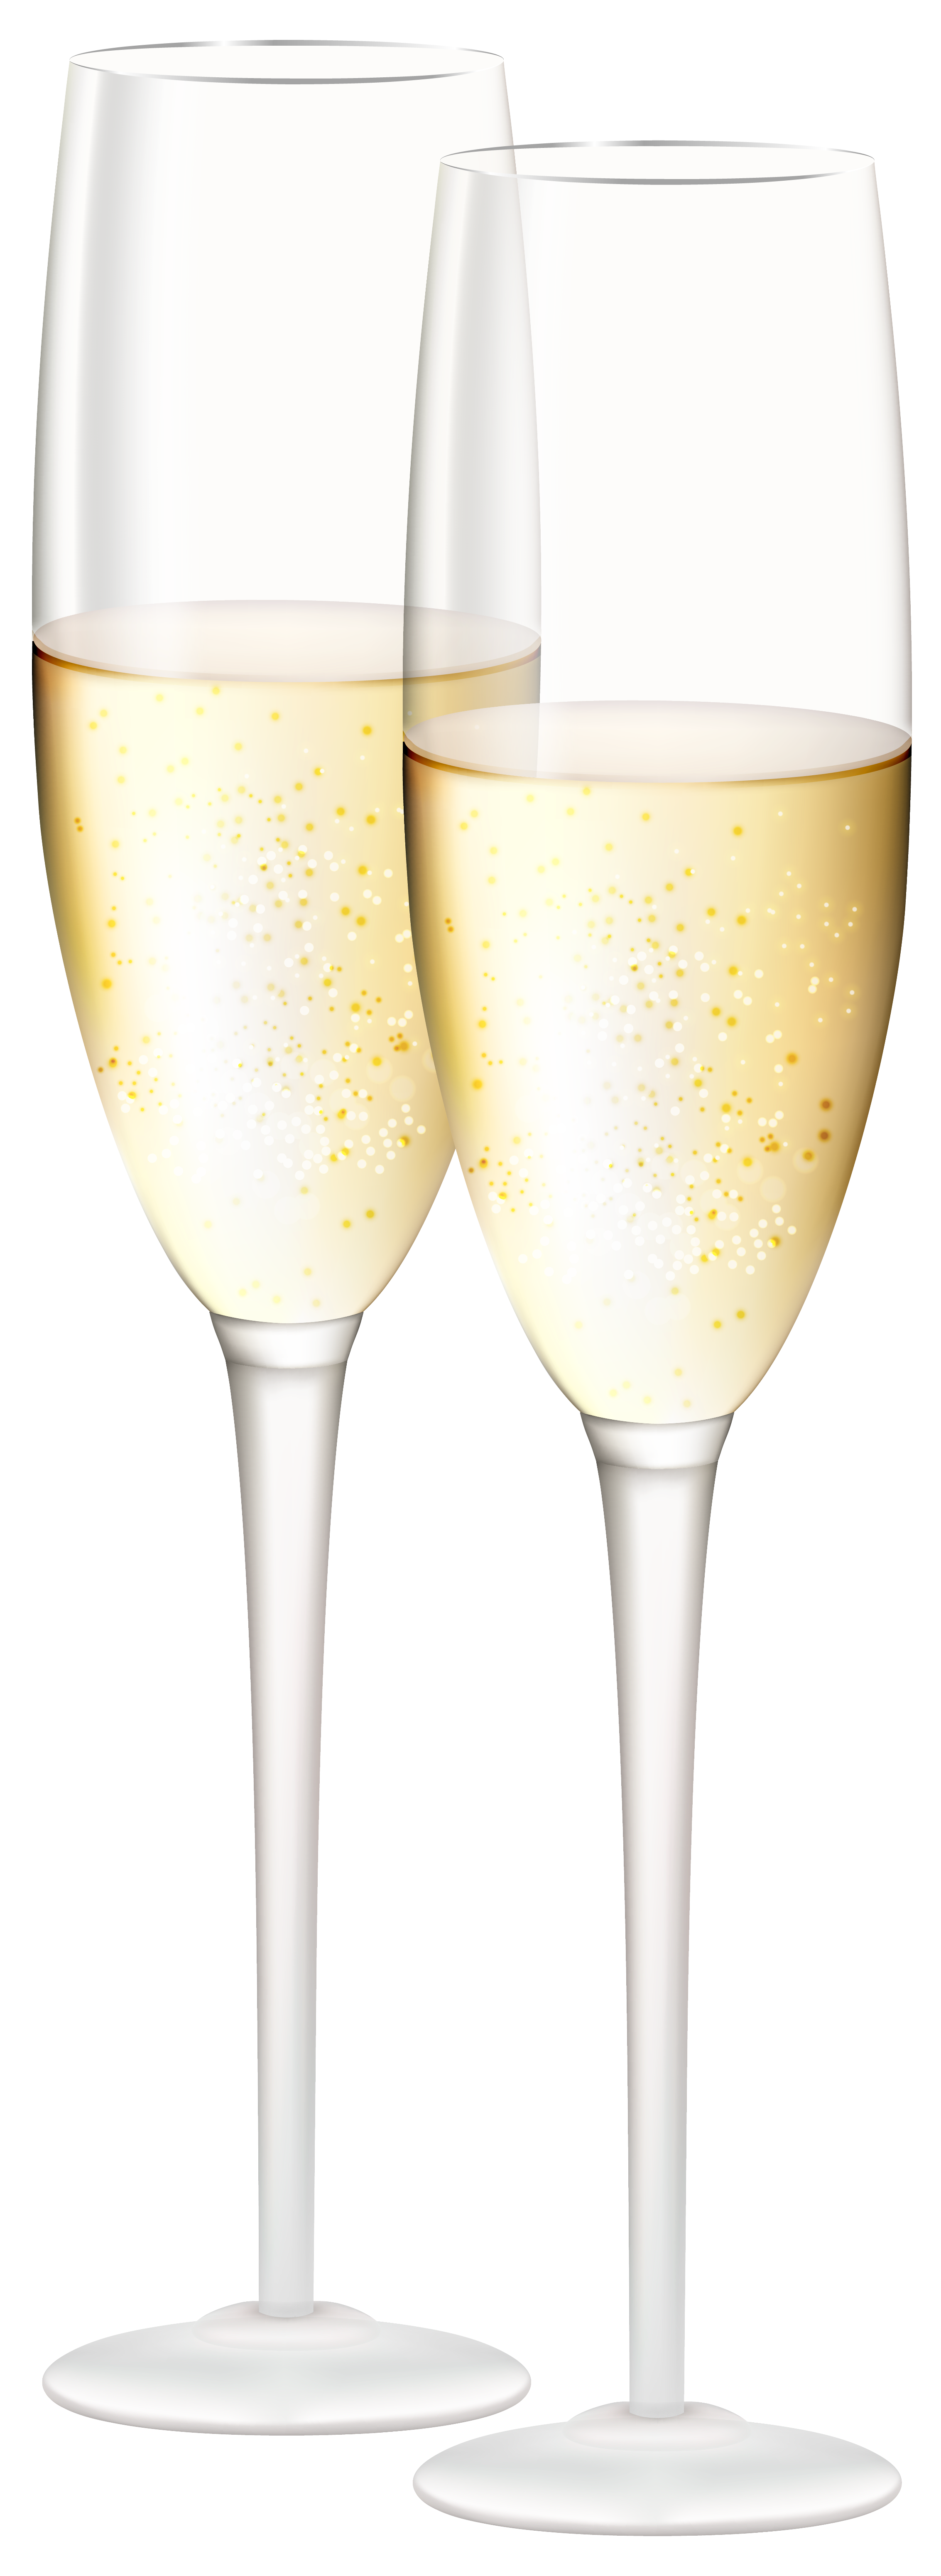 Champagne clipart drinking glass Art Clip Image full